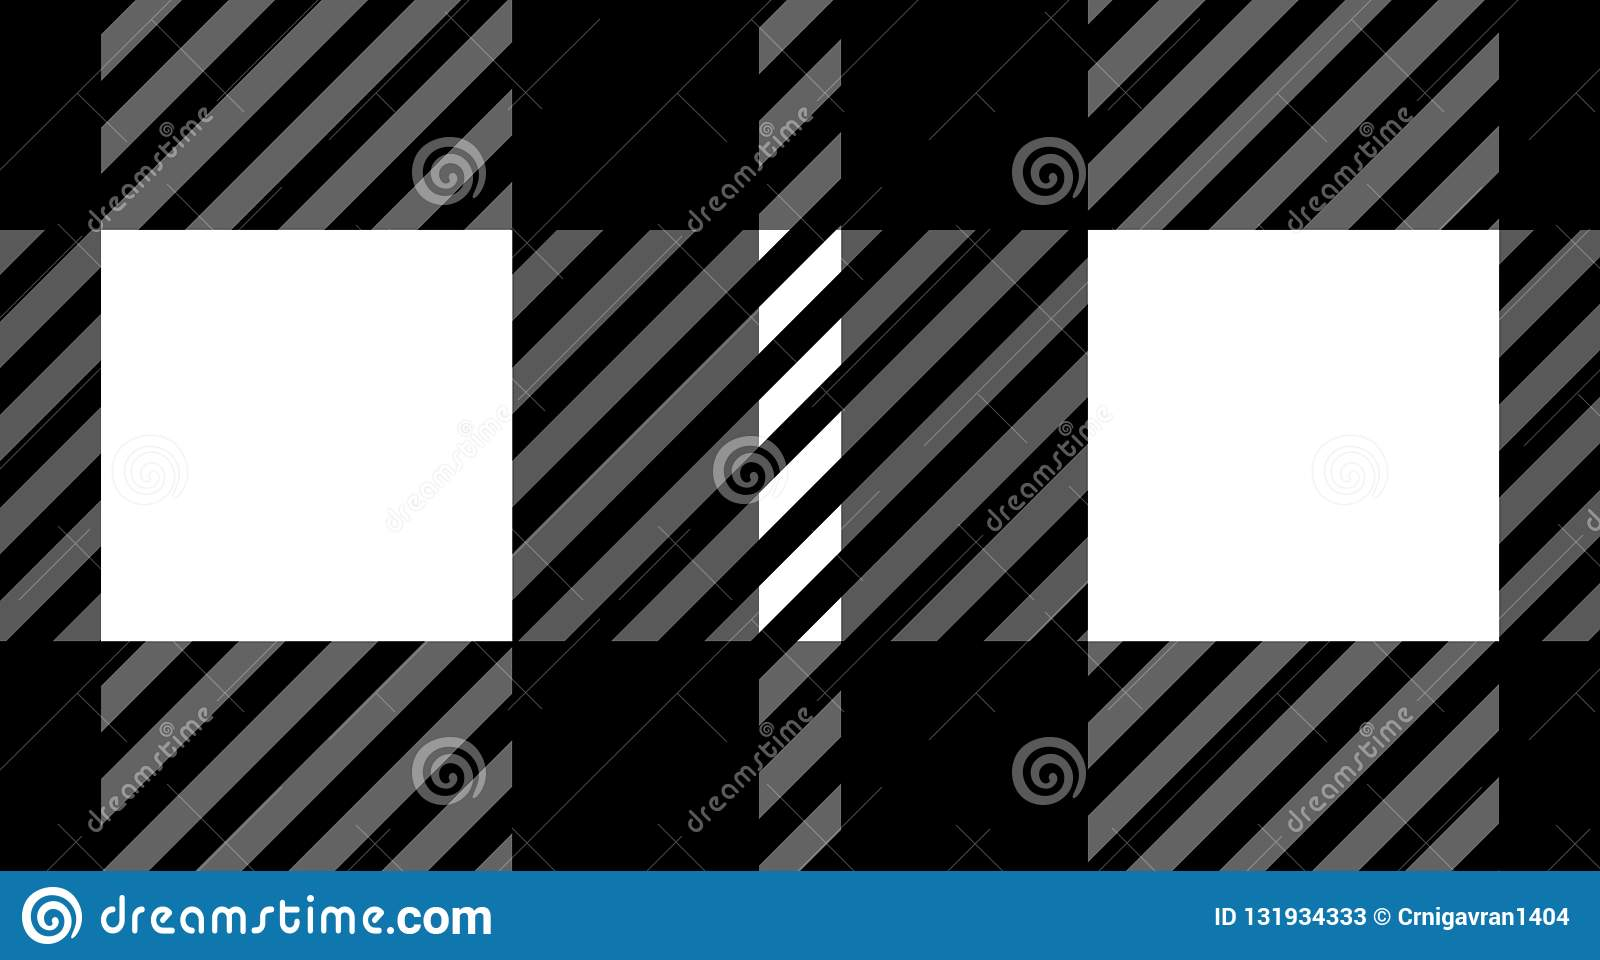 Black and white gingham pattern background for plaid,tablecloths for textile articles,vector illustration.EPS-10.